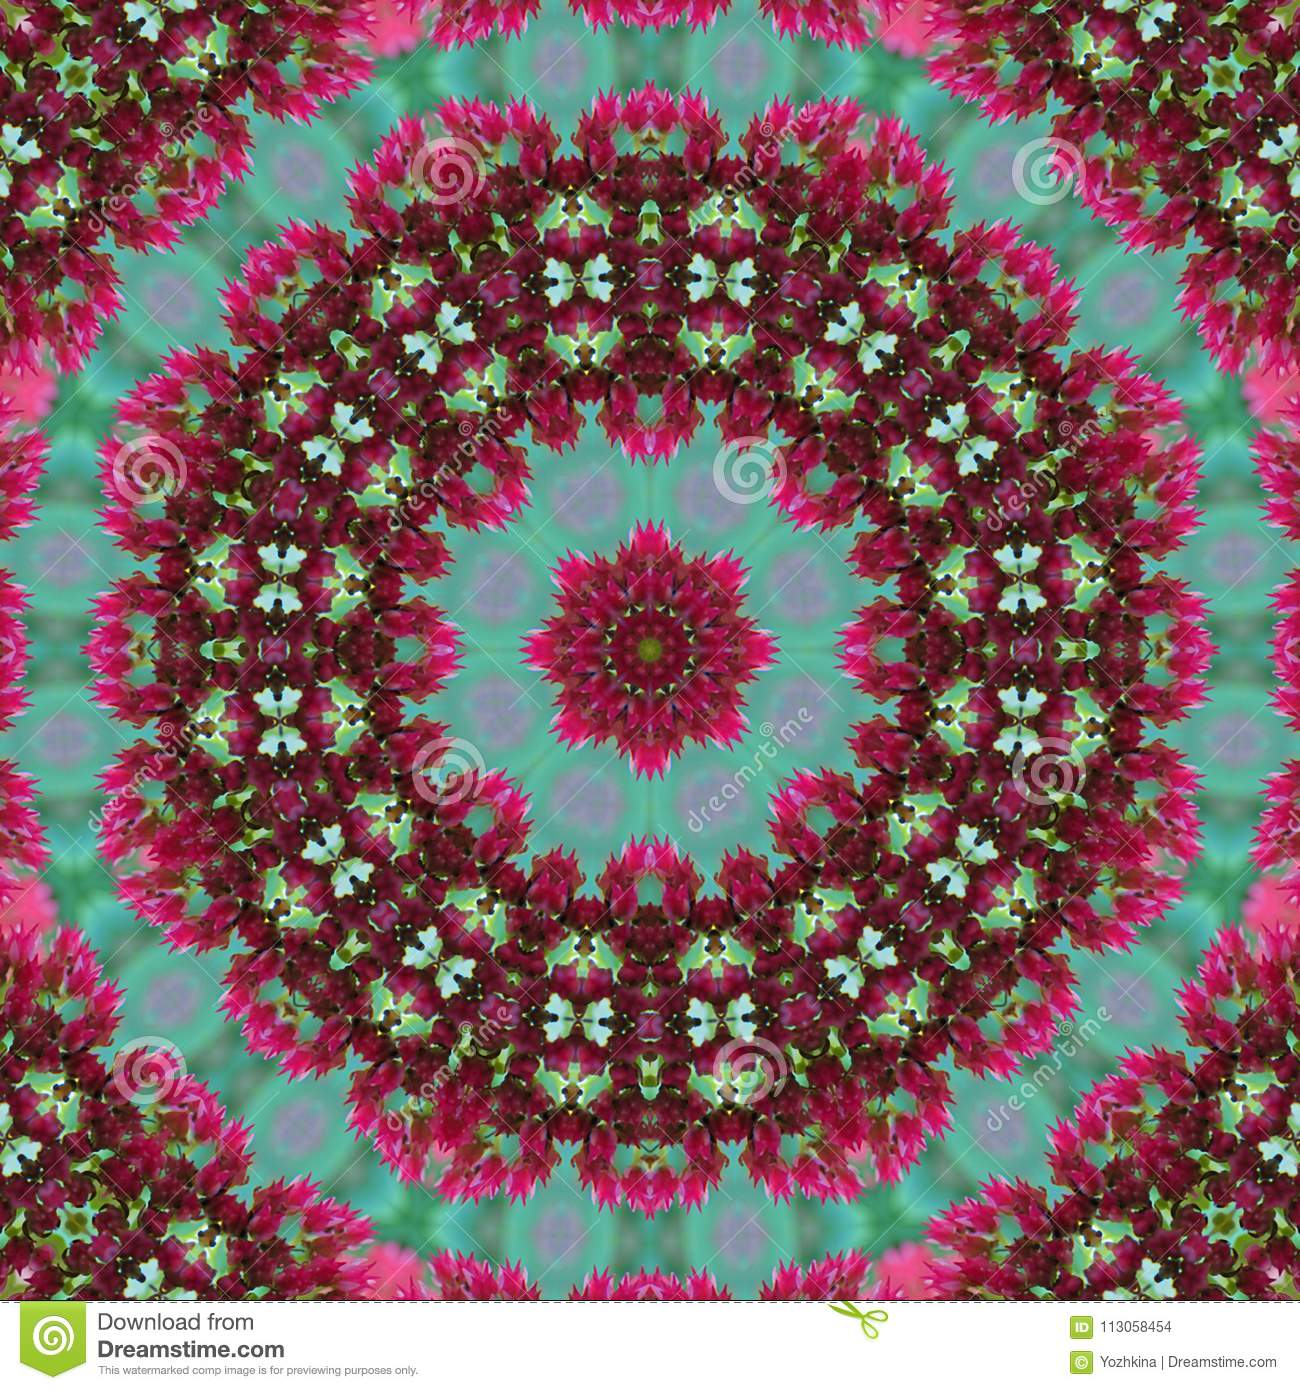 Green and pink floral geometric rosette seamless pattern